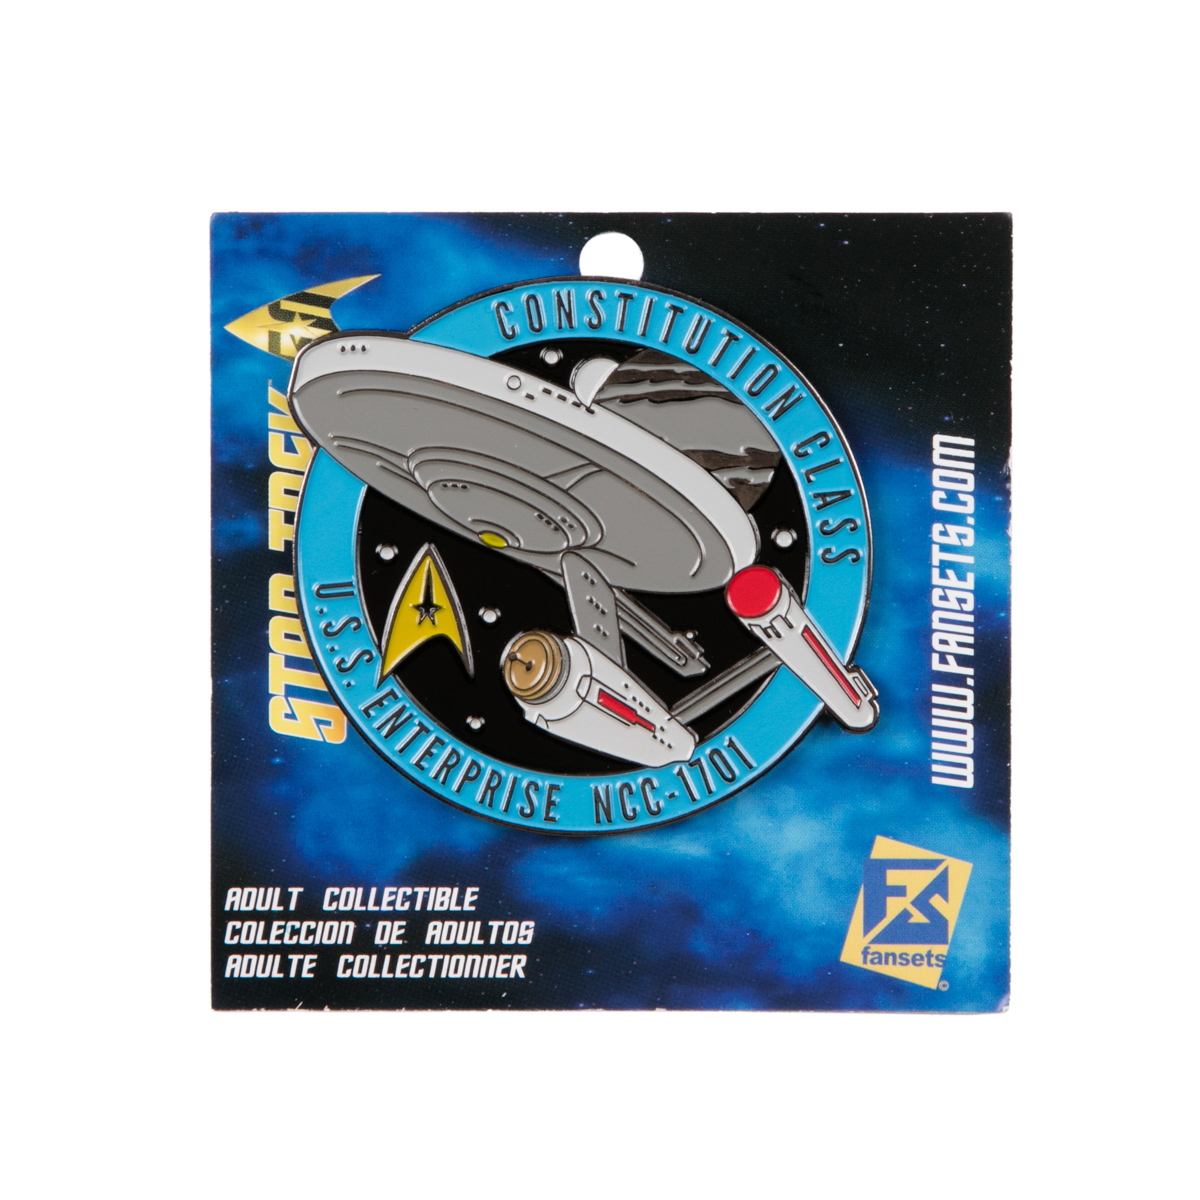 Star Trek Enterprise 1701 Collector's Pin